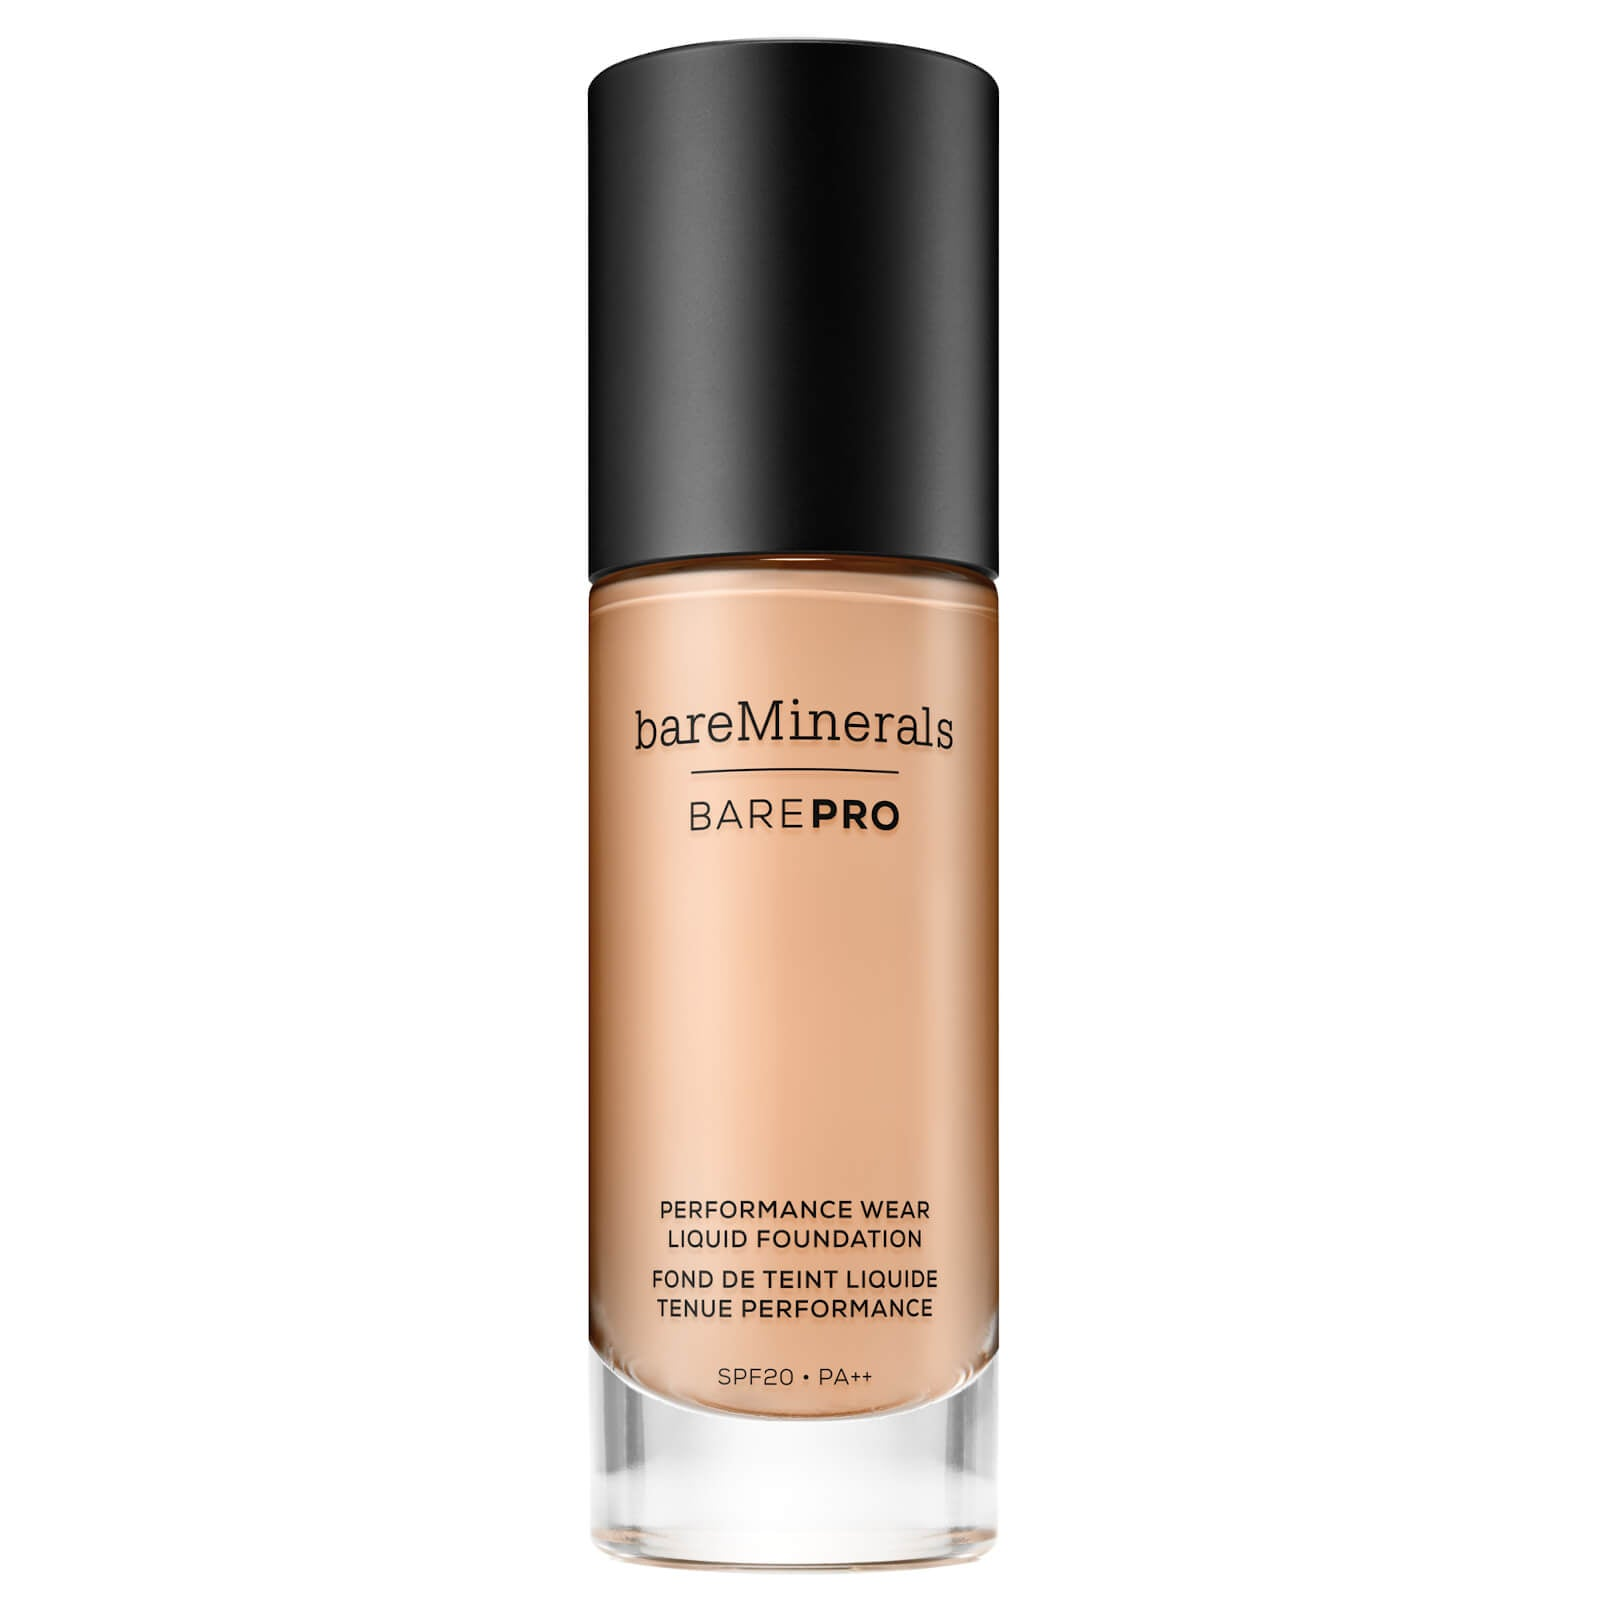 bareMinerals BAREPRO 24-Hour Full Coverage Liquid Foundation SPF20 - Natural 11